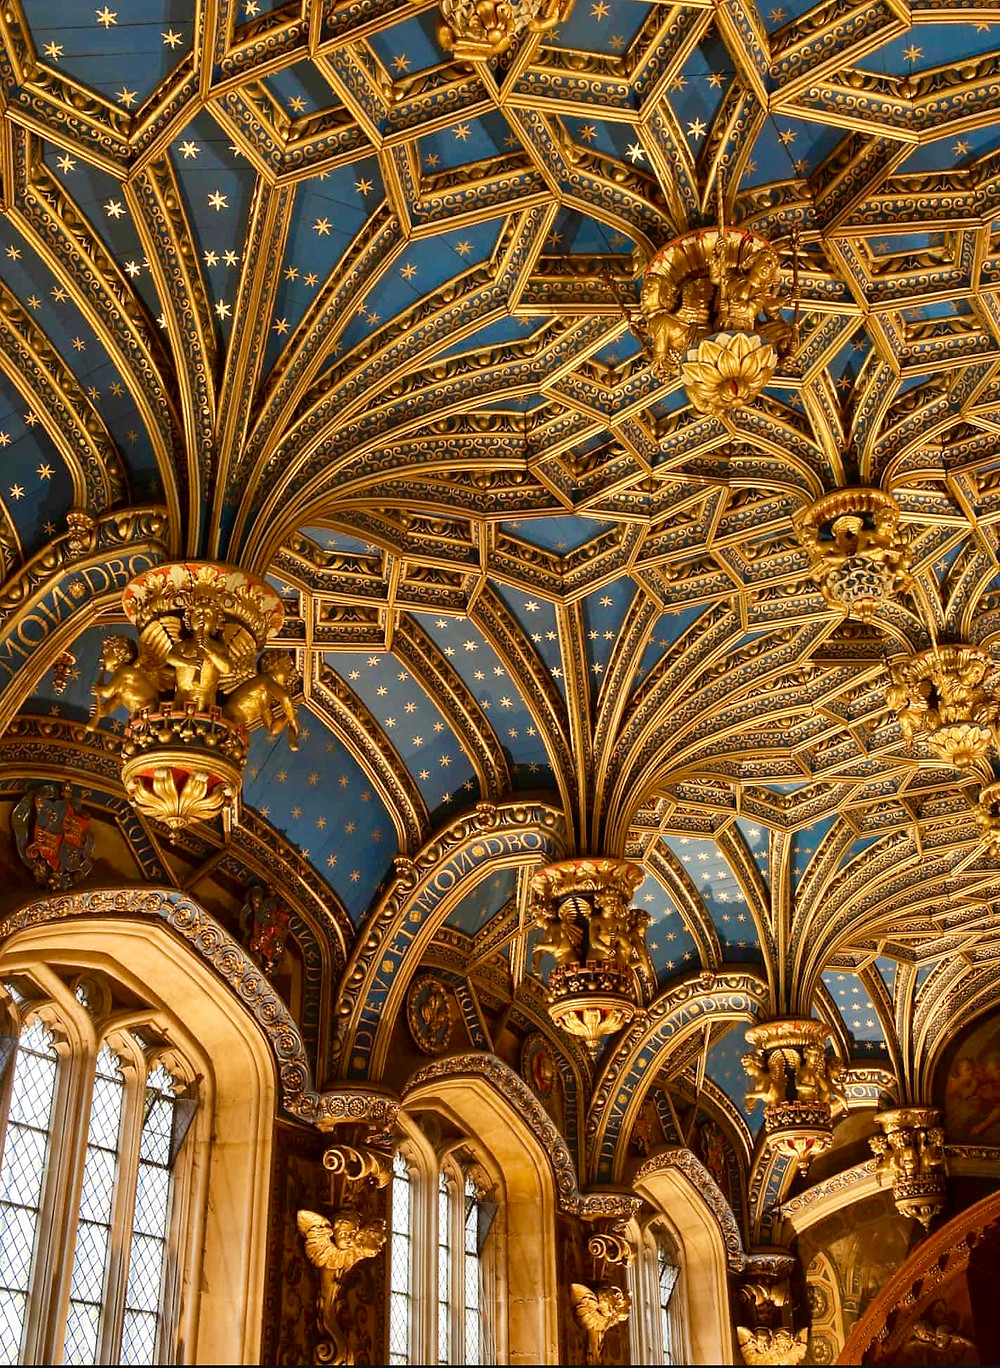 the ceiling of the Royal Chapel